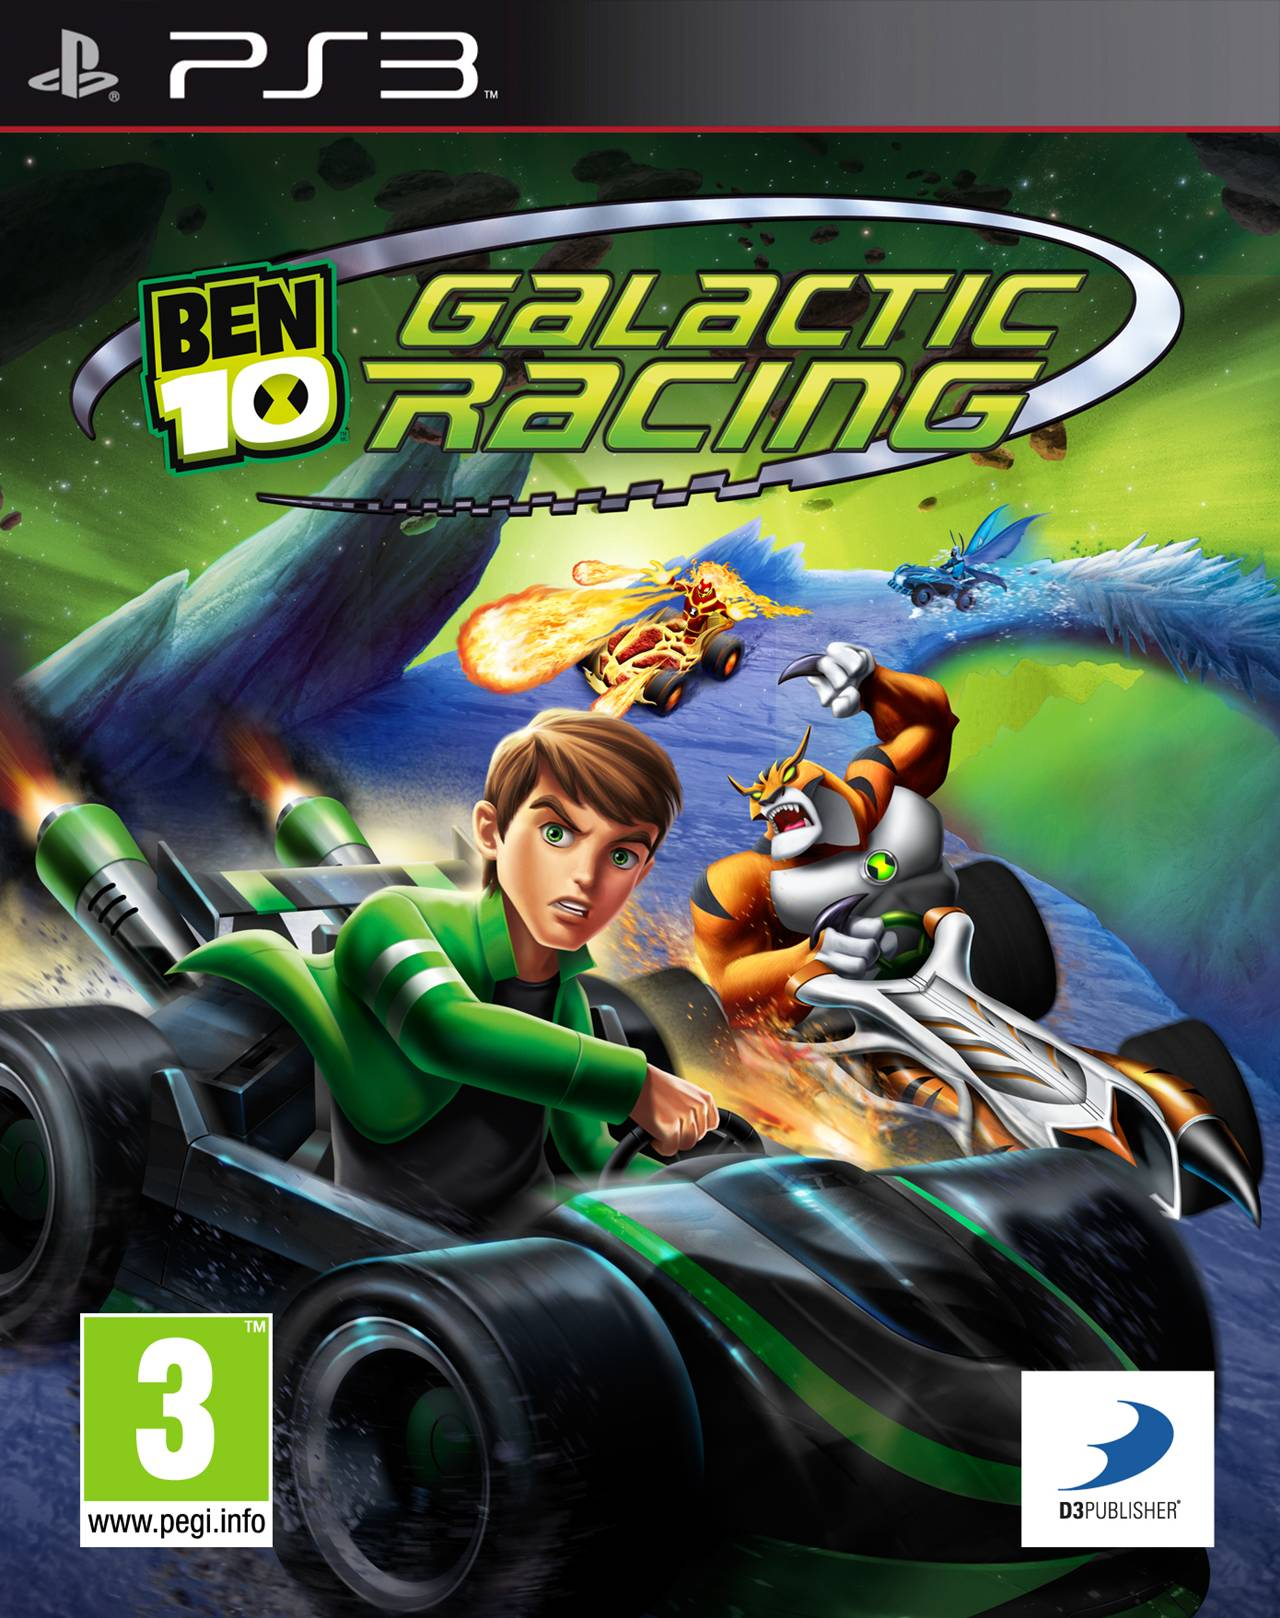 Ben 10: Galactic Racing - GameSpot